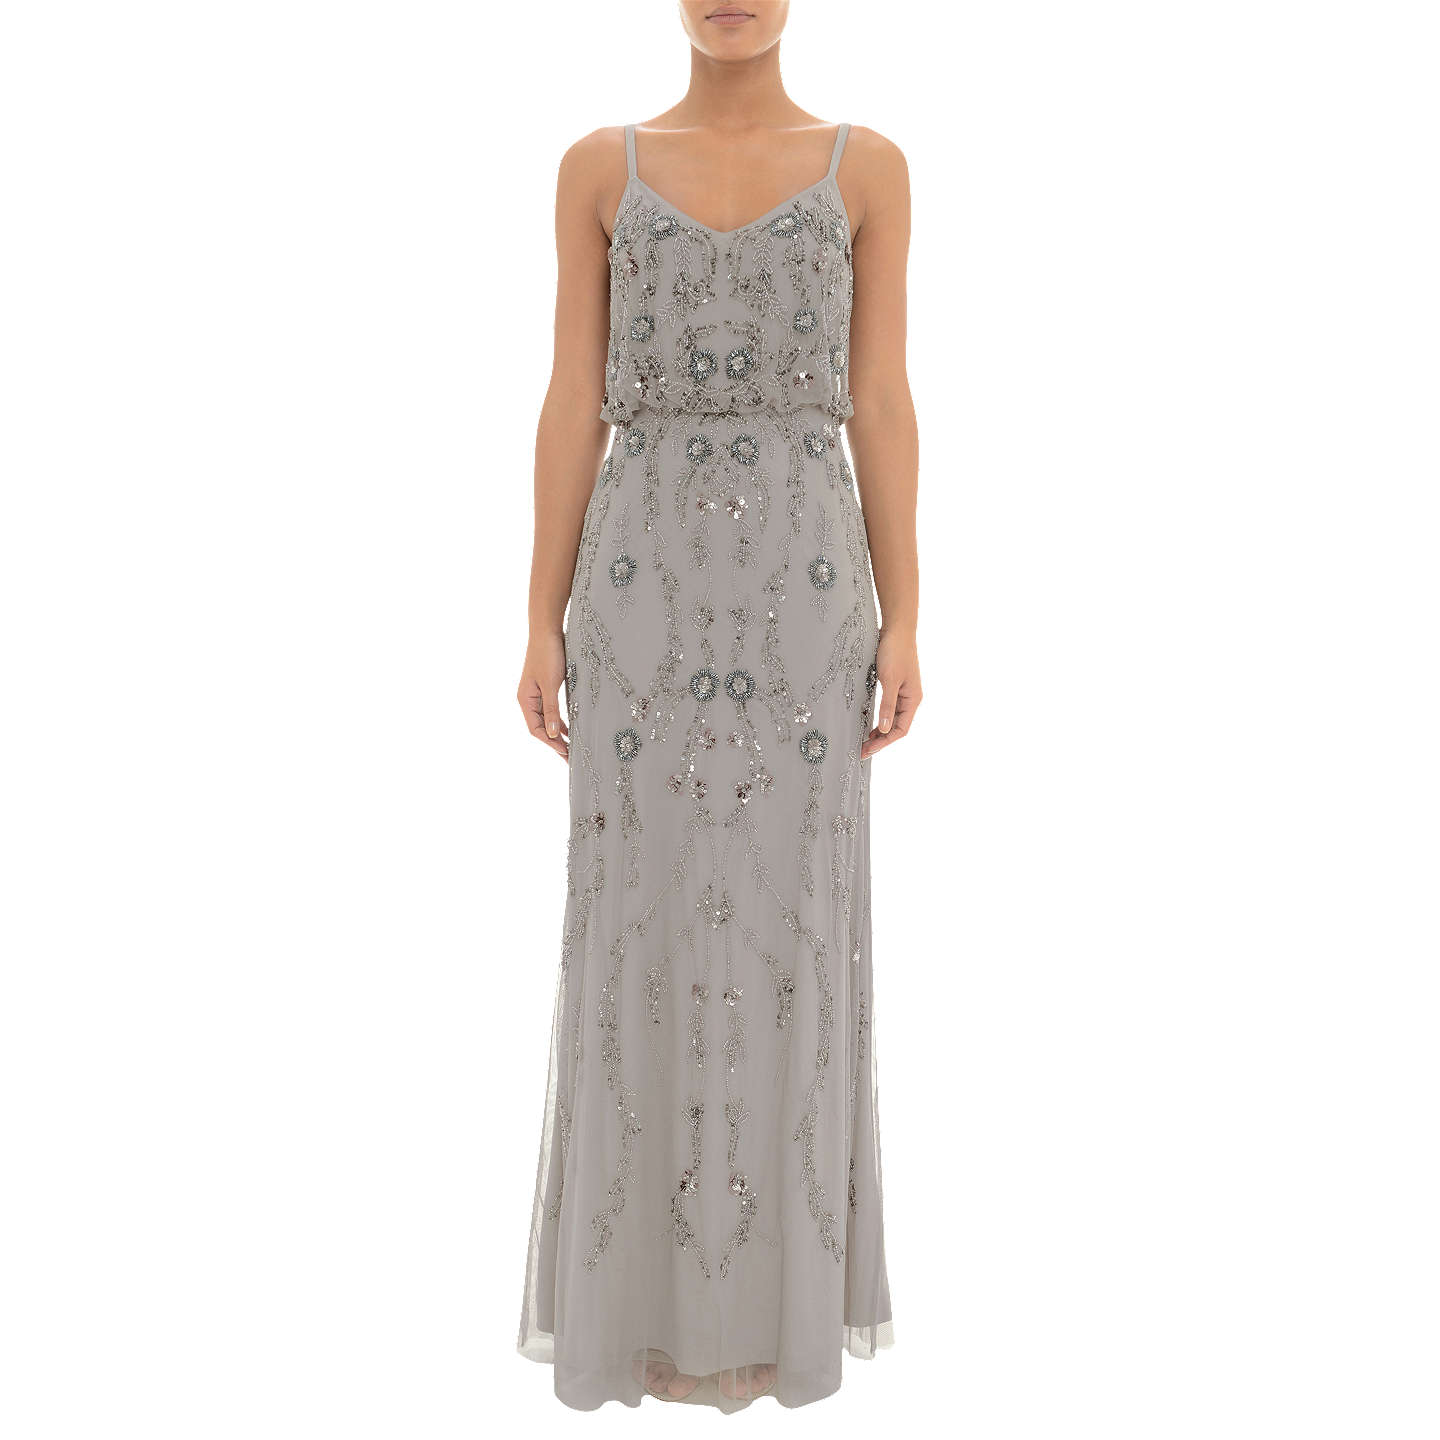 Adrianna Papell Floral Beaded Blouson Dress, Platinum at John Lewis